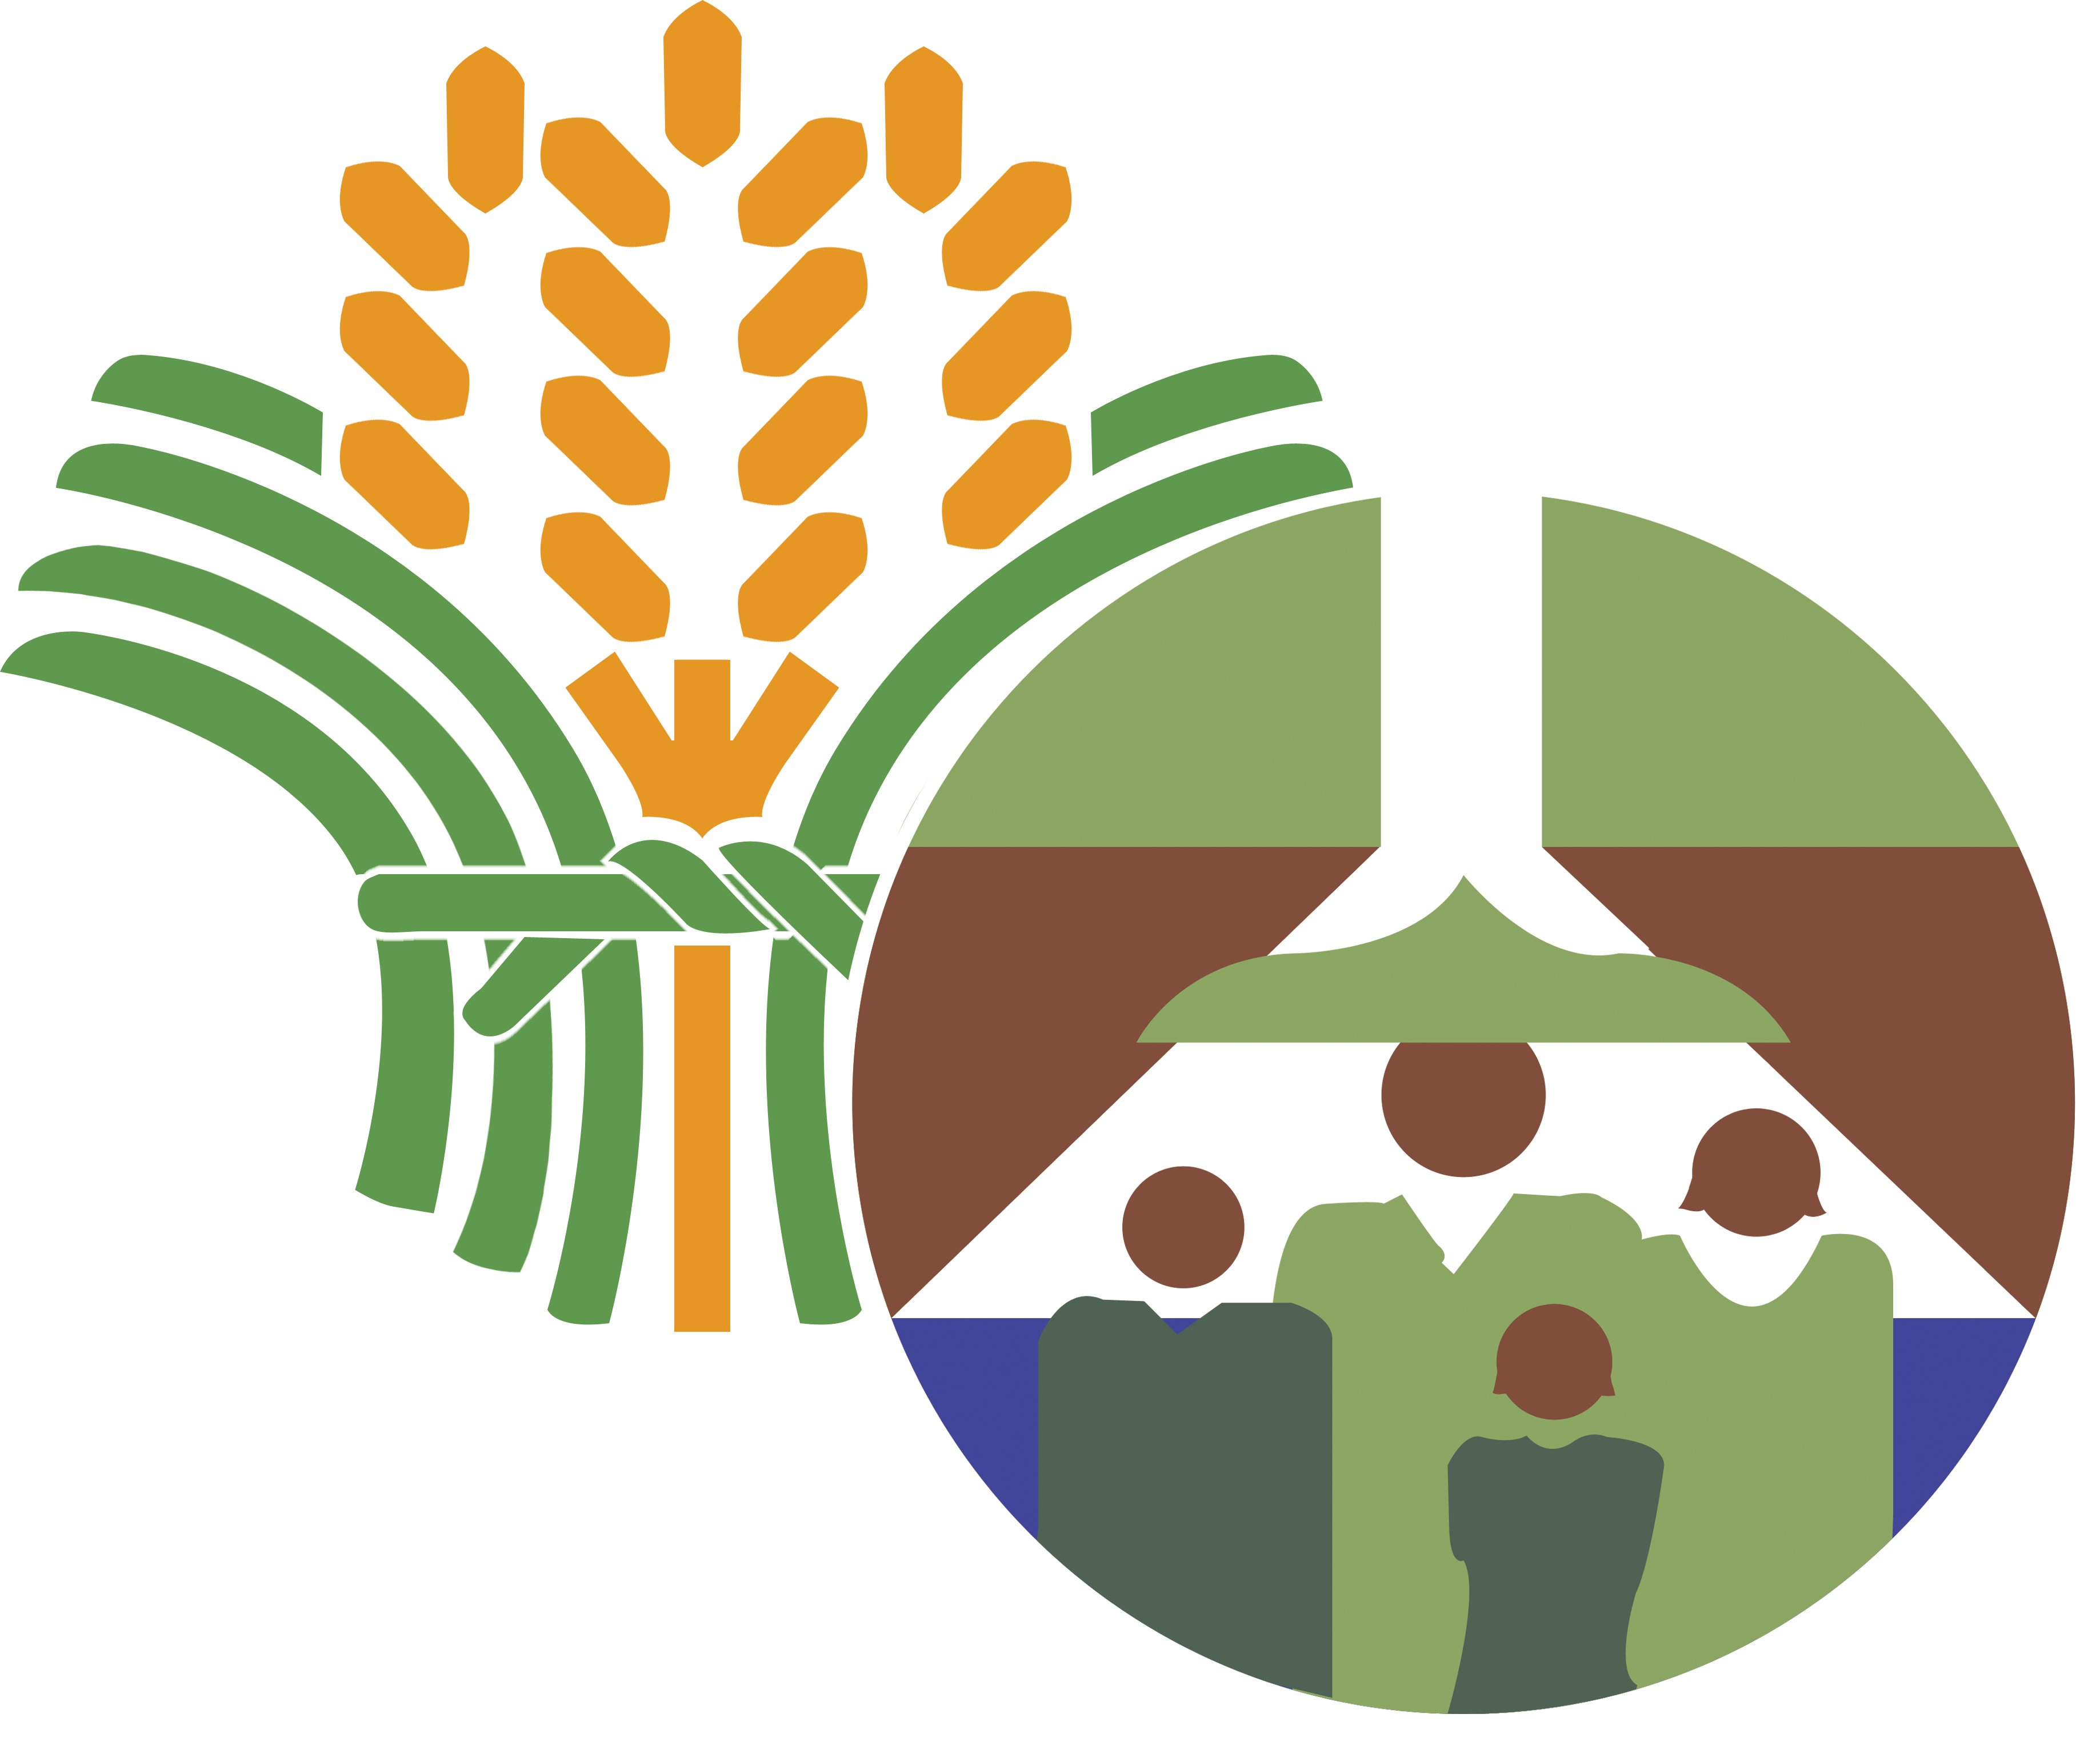 Farming clipart agriculture science. Home partner agencies